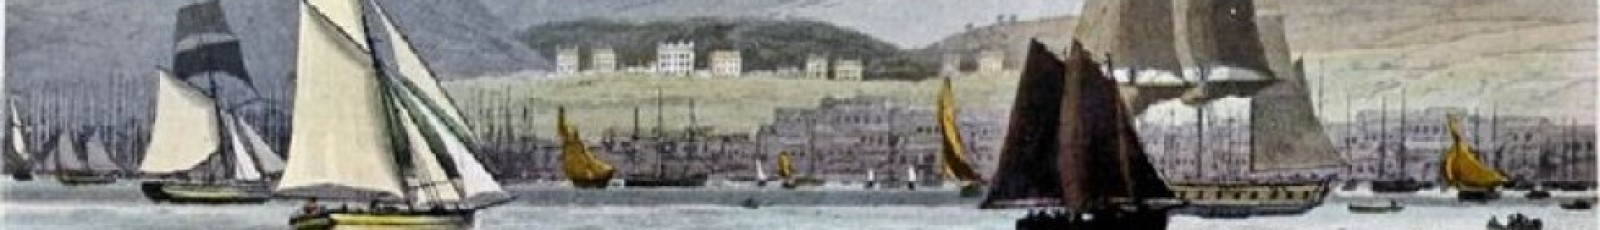 cropped-cropped-greenock-boats.jpg